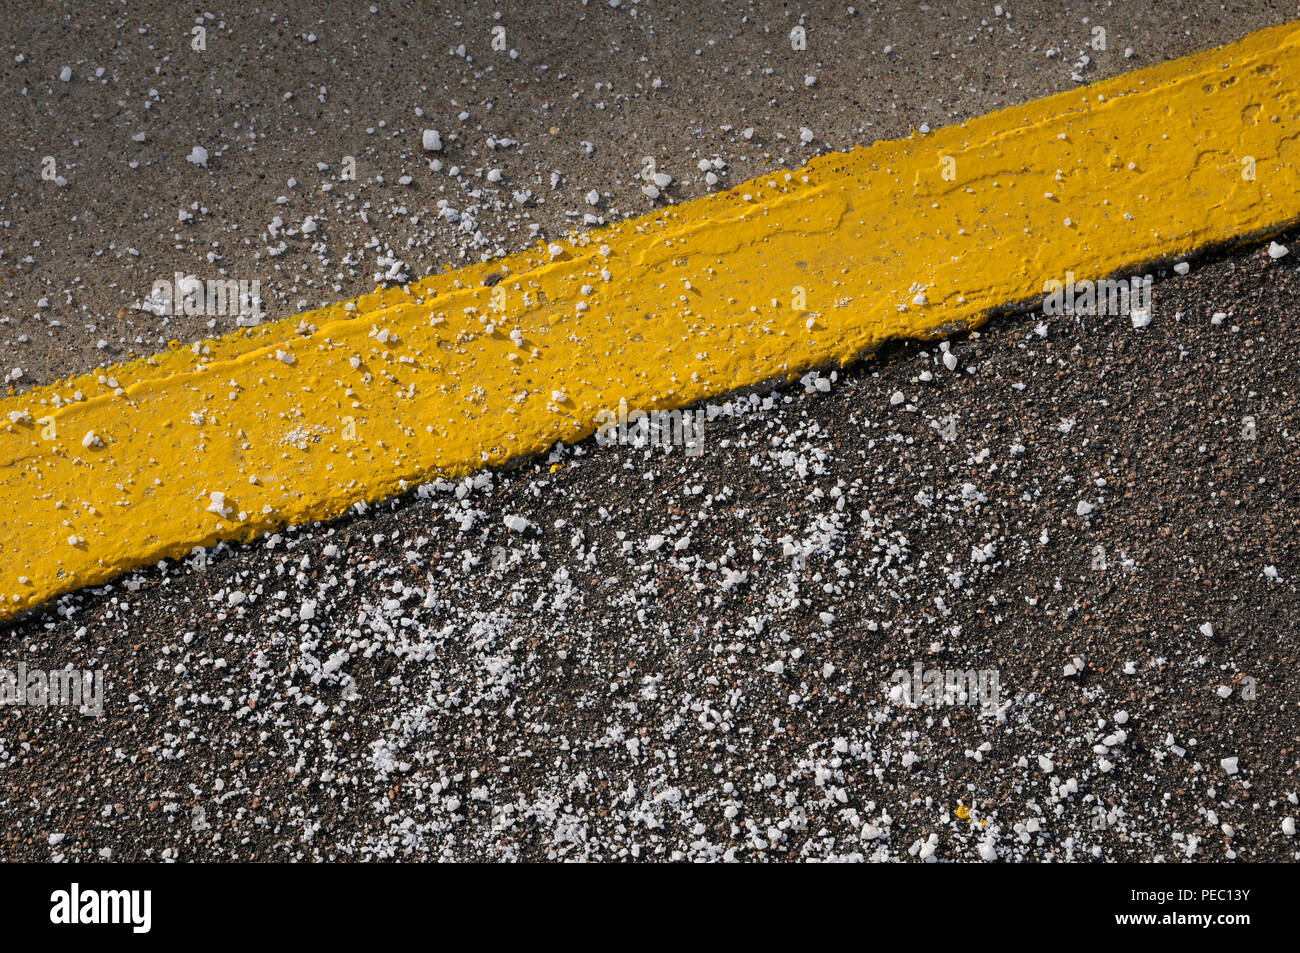 Road salt grit / rock salt / sodium chloride scattered around a painted yellow line - Stock Image